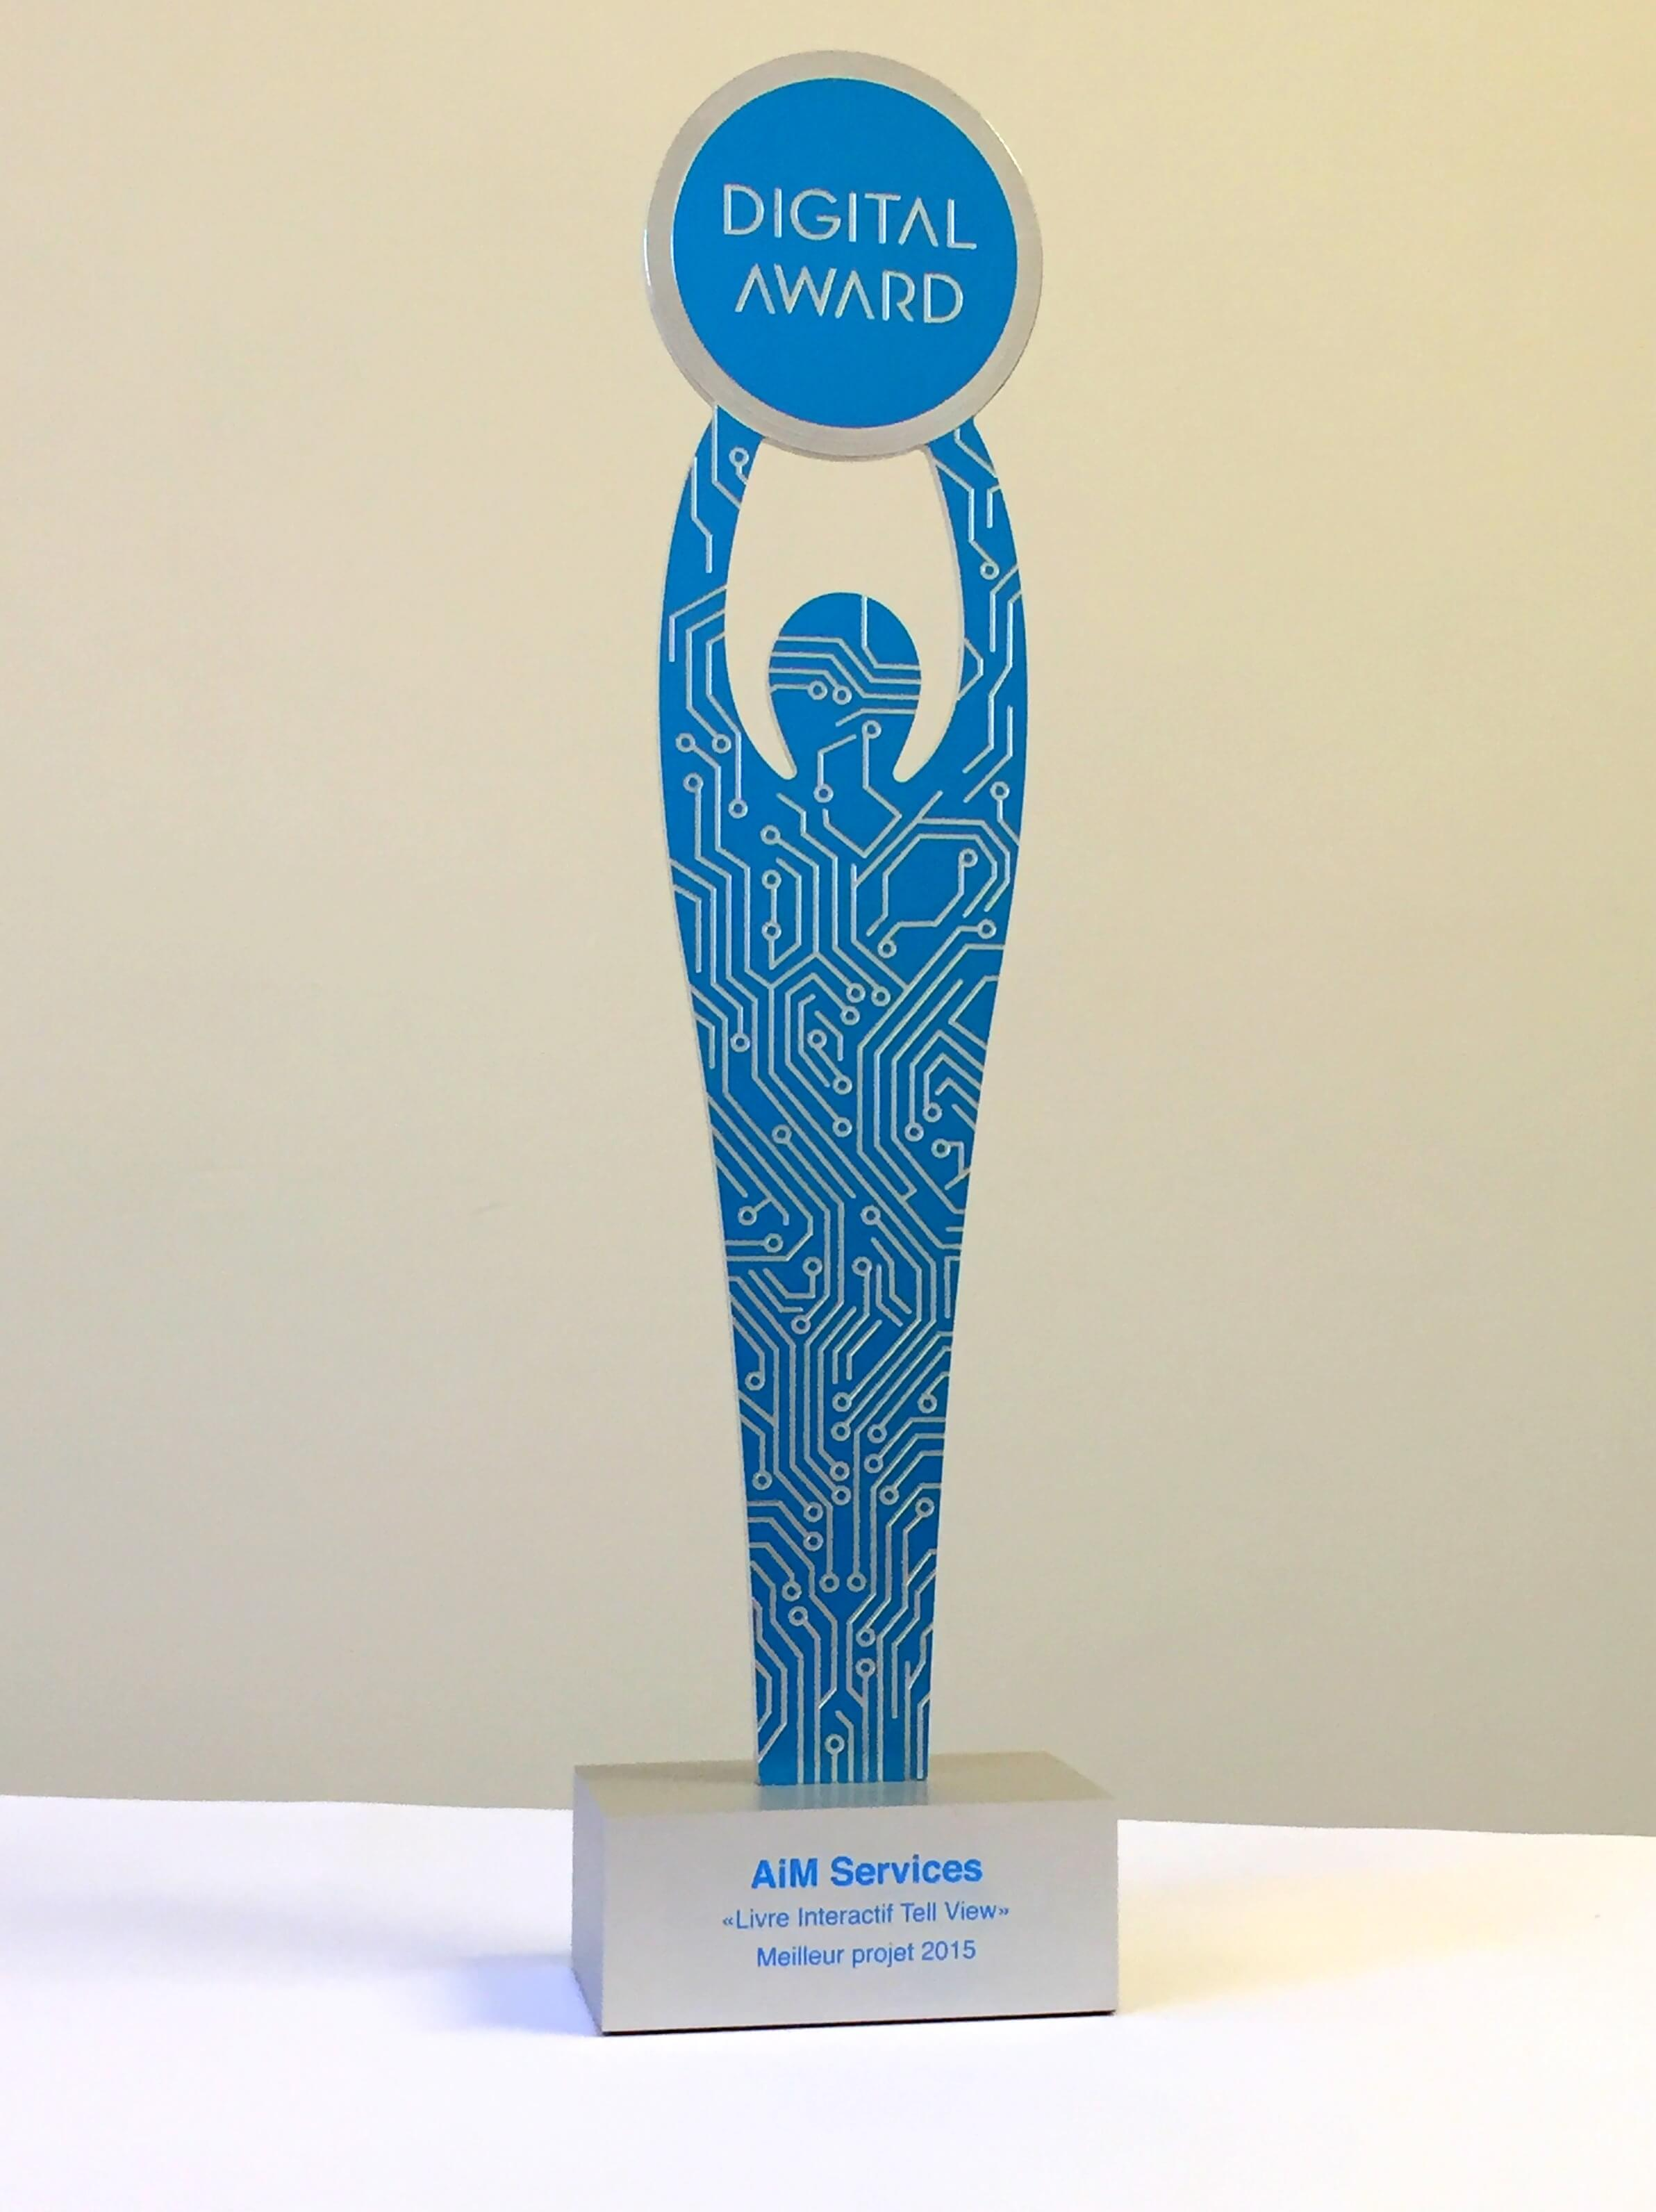 Digital Award 2015